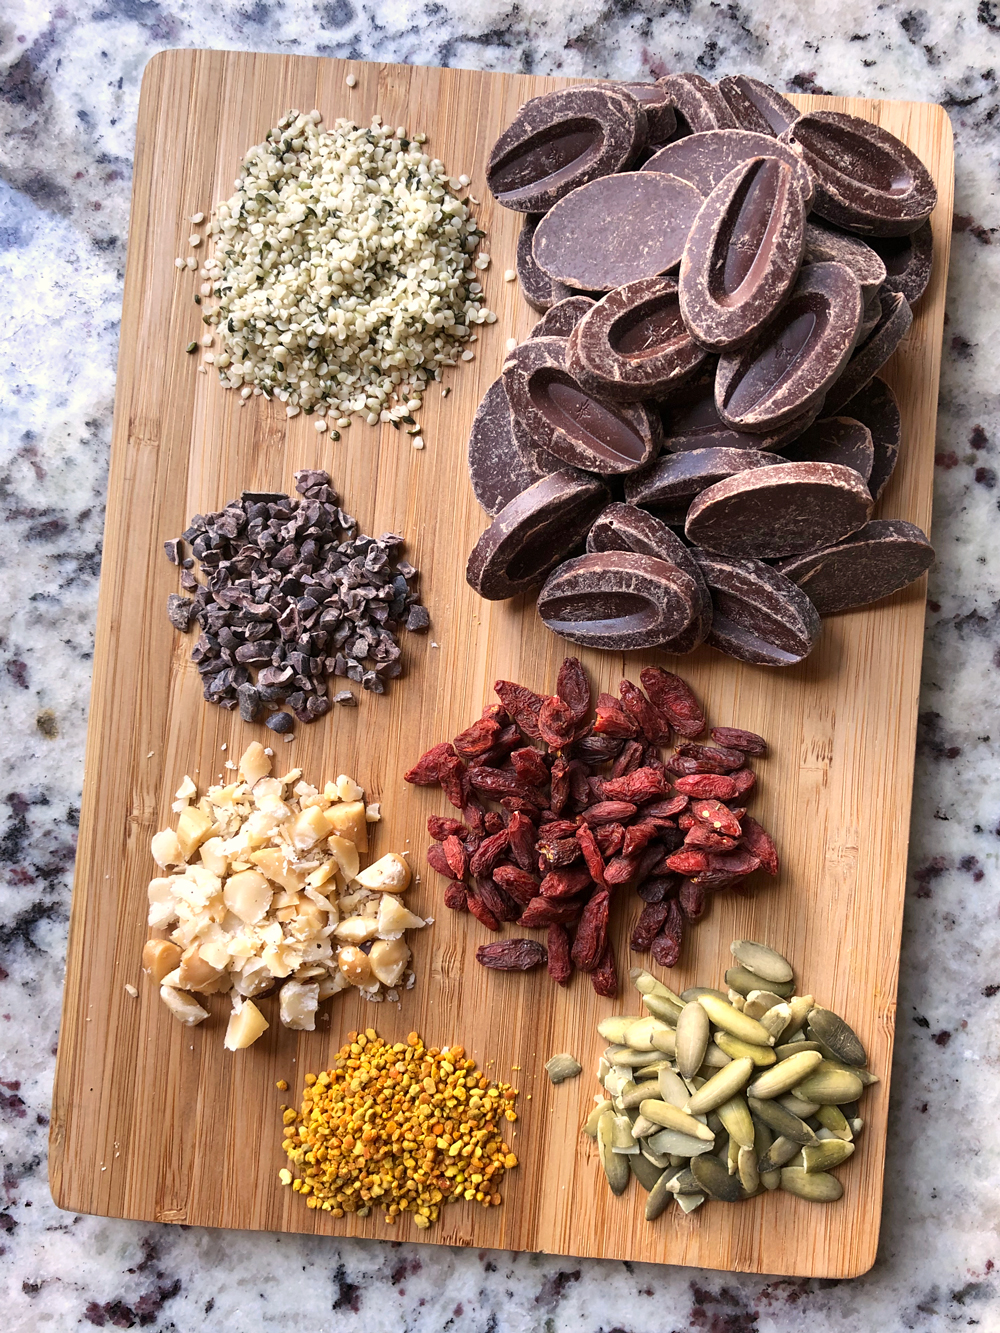 Ingredients in Superfood Bark